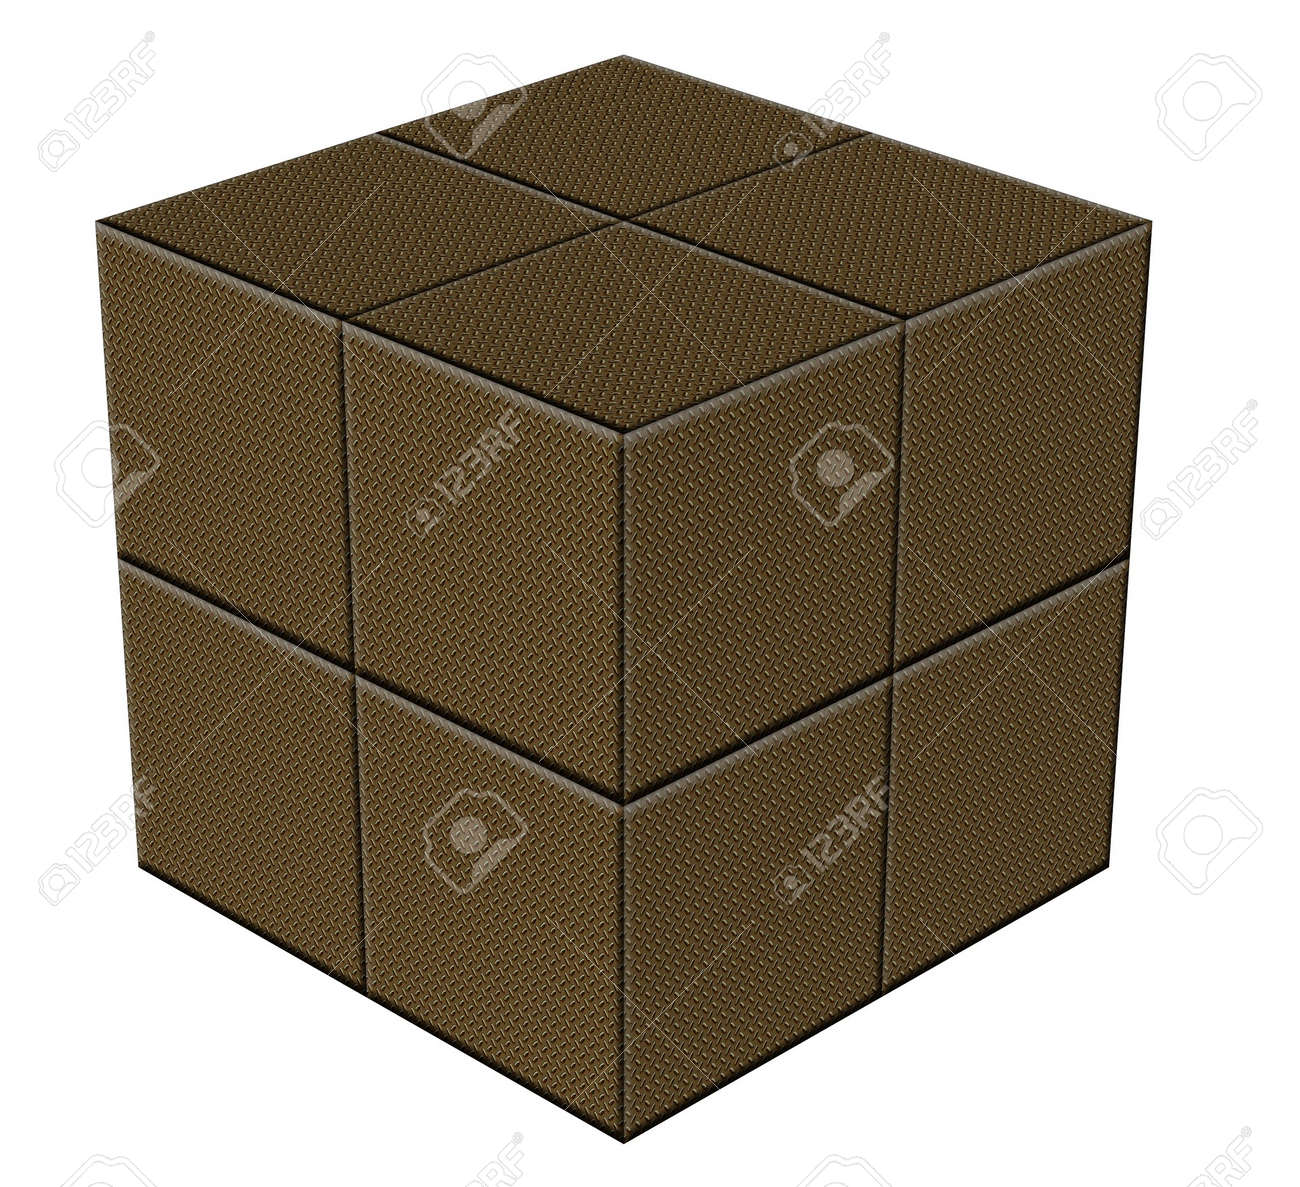 new product new high cheaper Gold plated security boxes for very expensive items